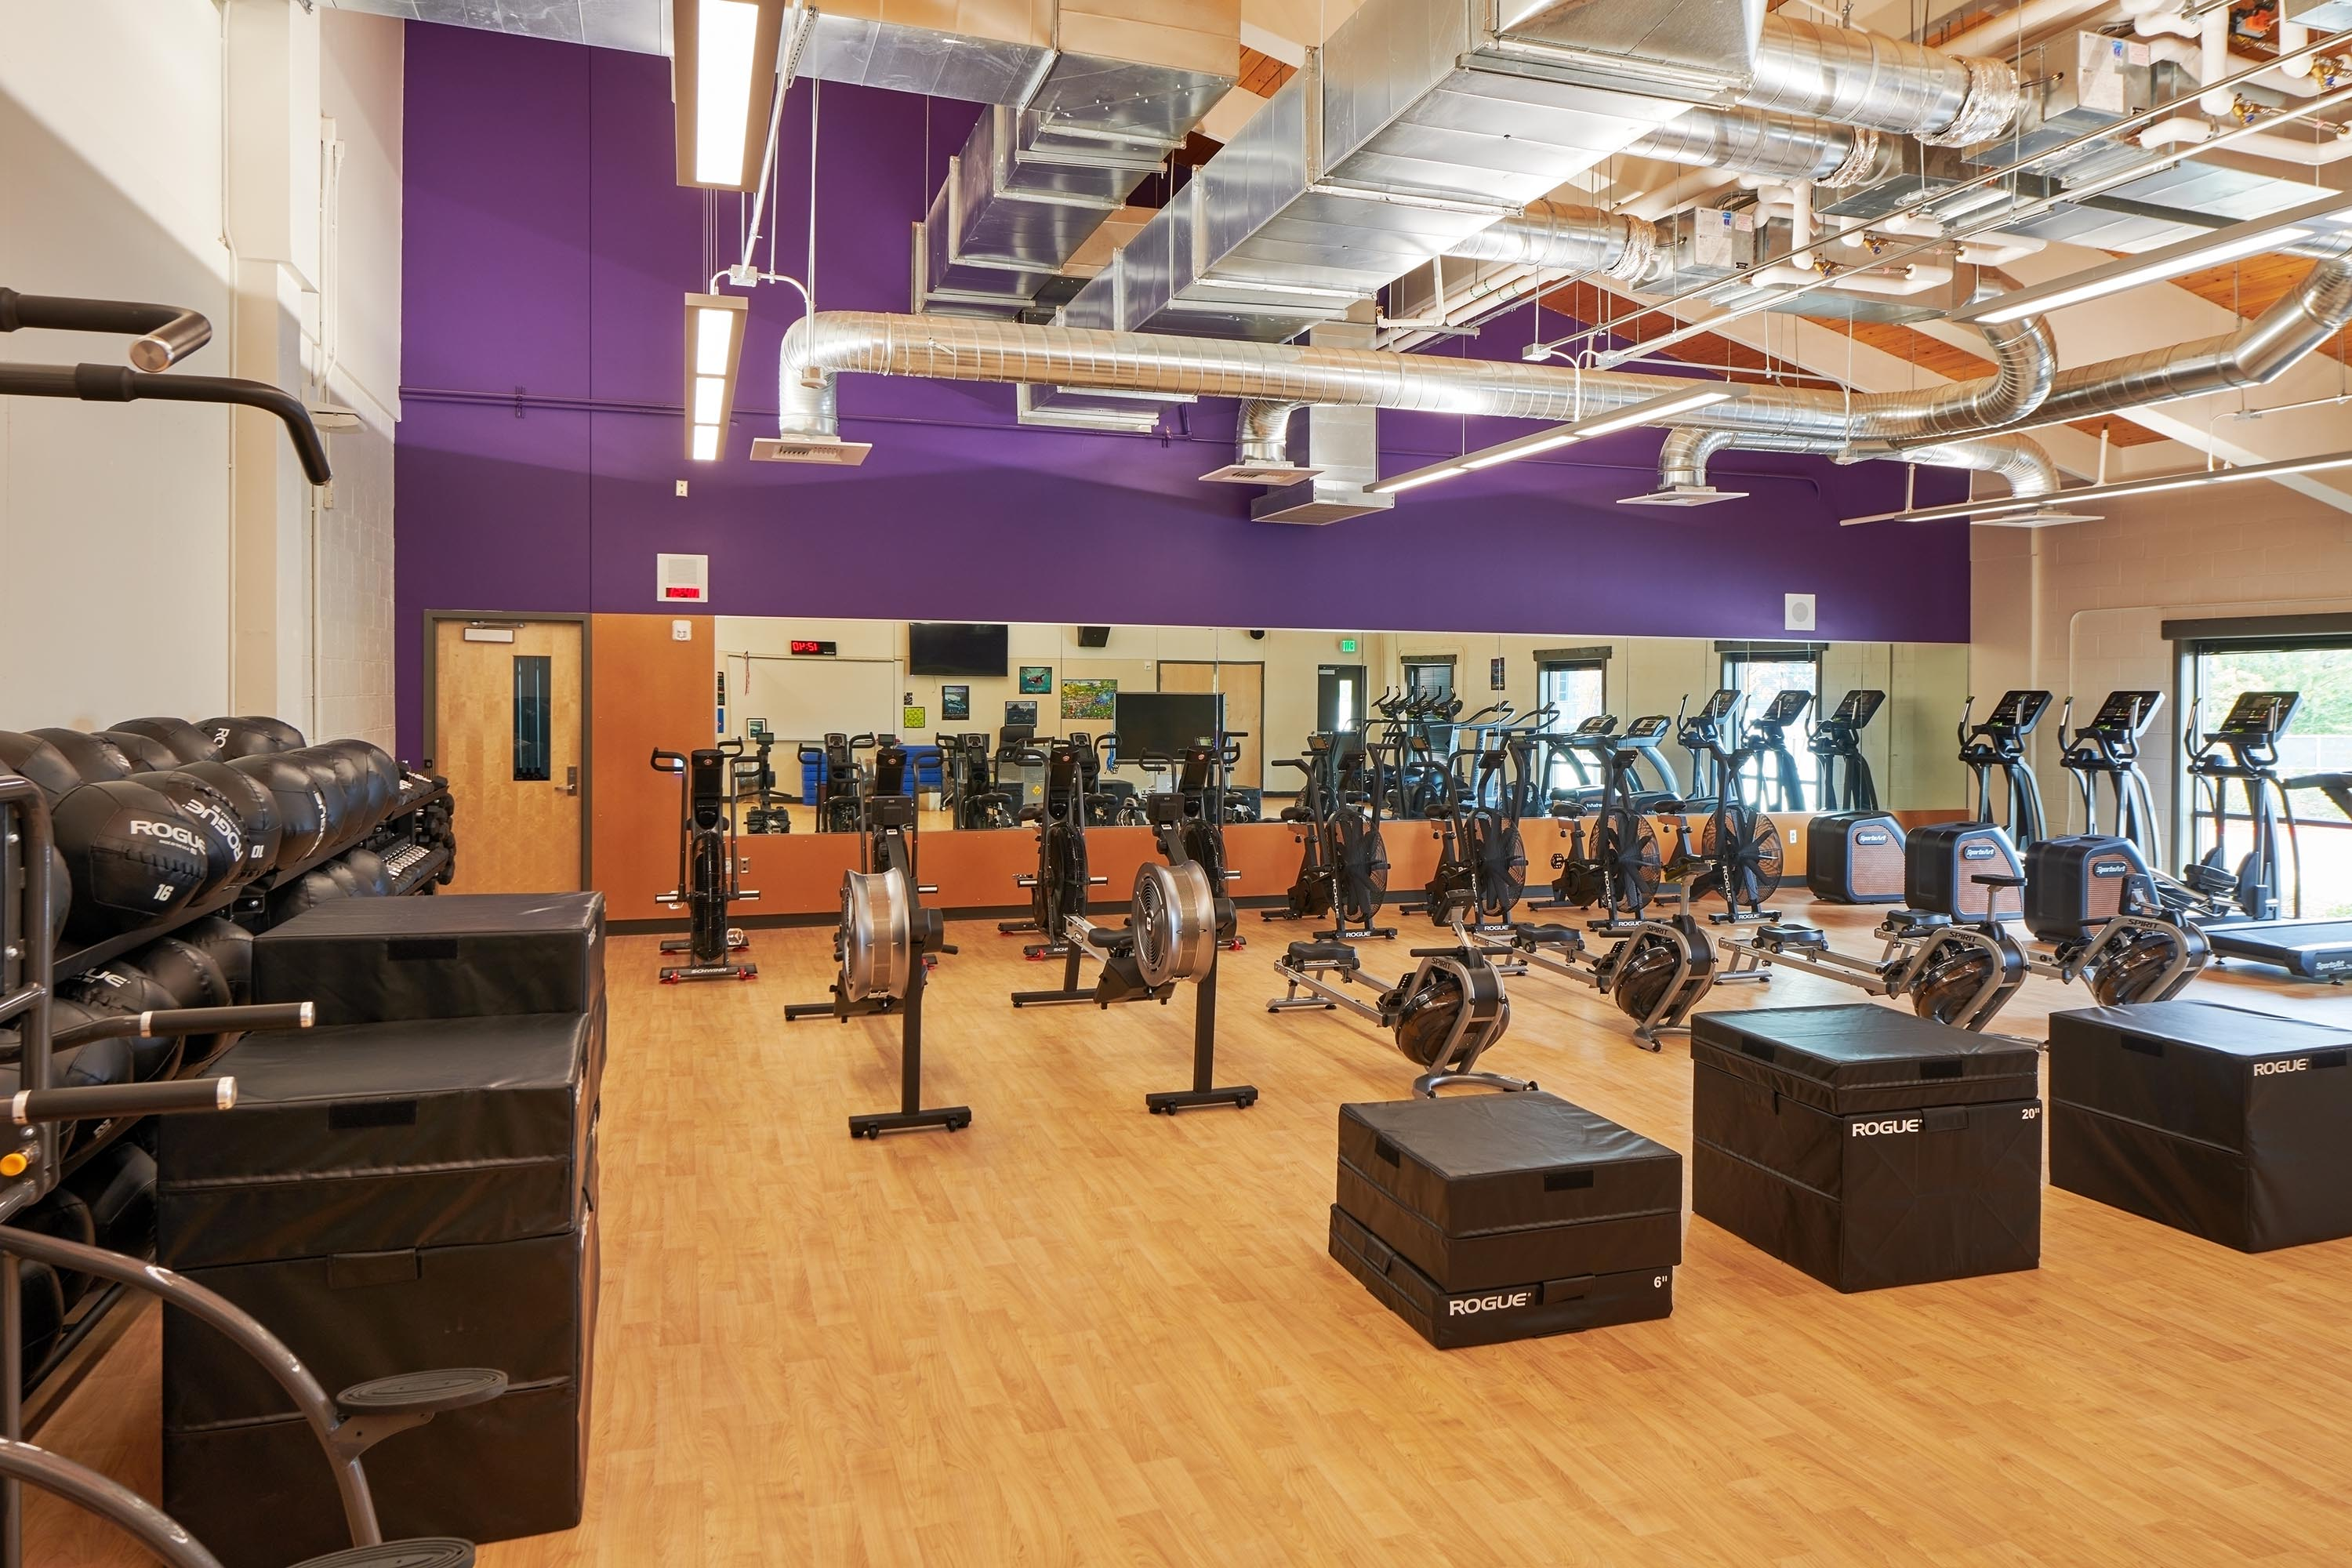 Gym room with machines and weights.